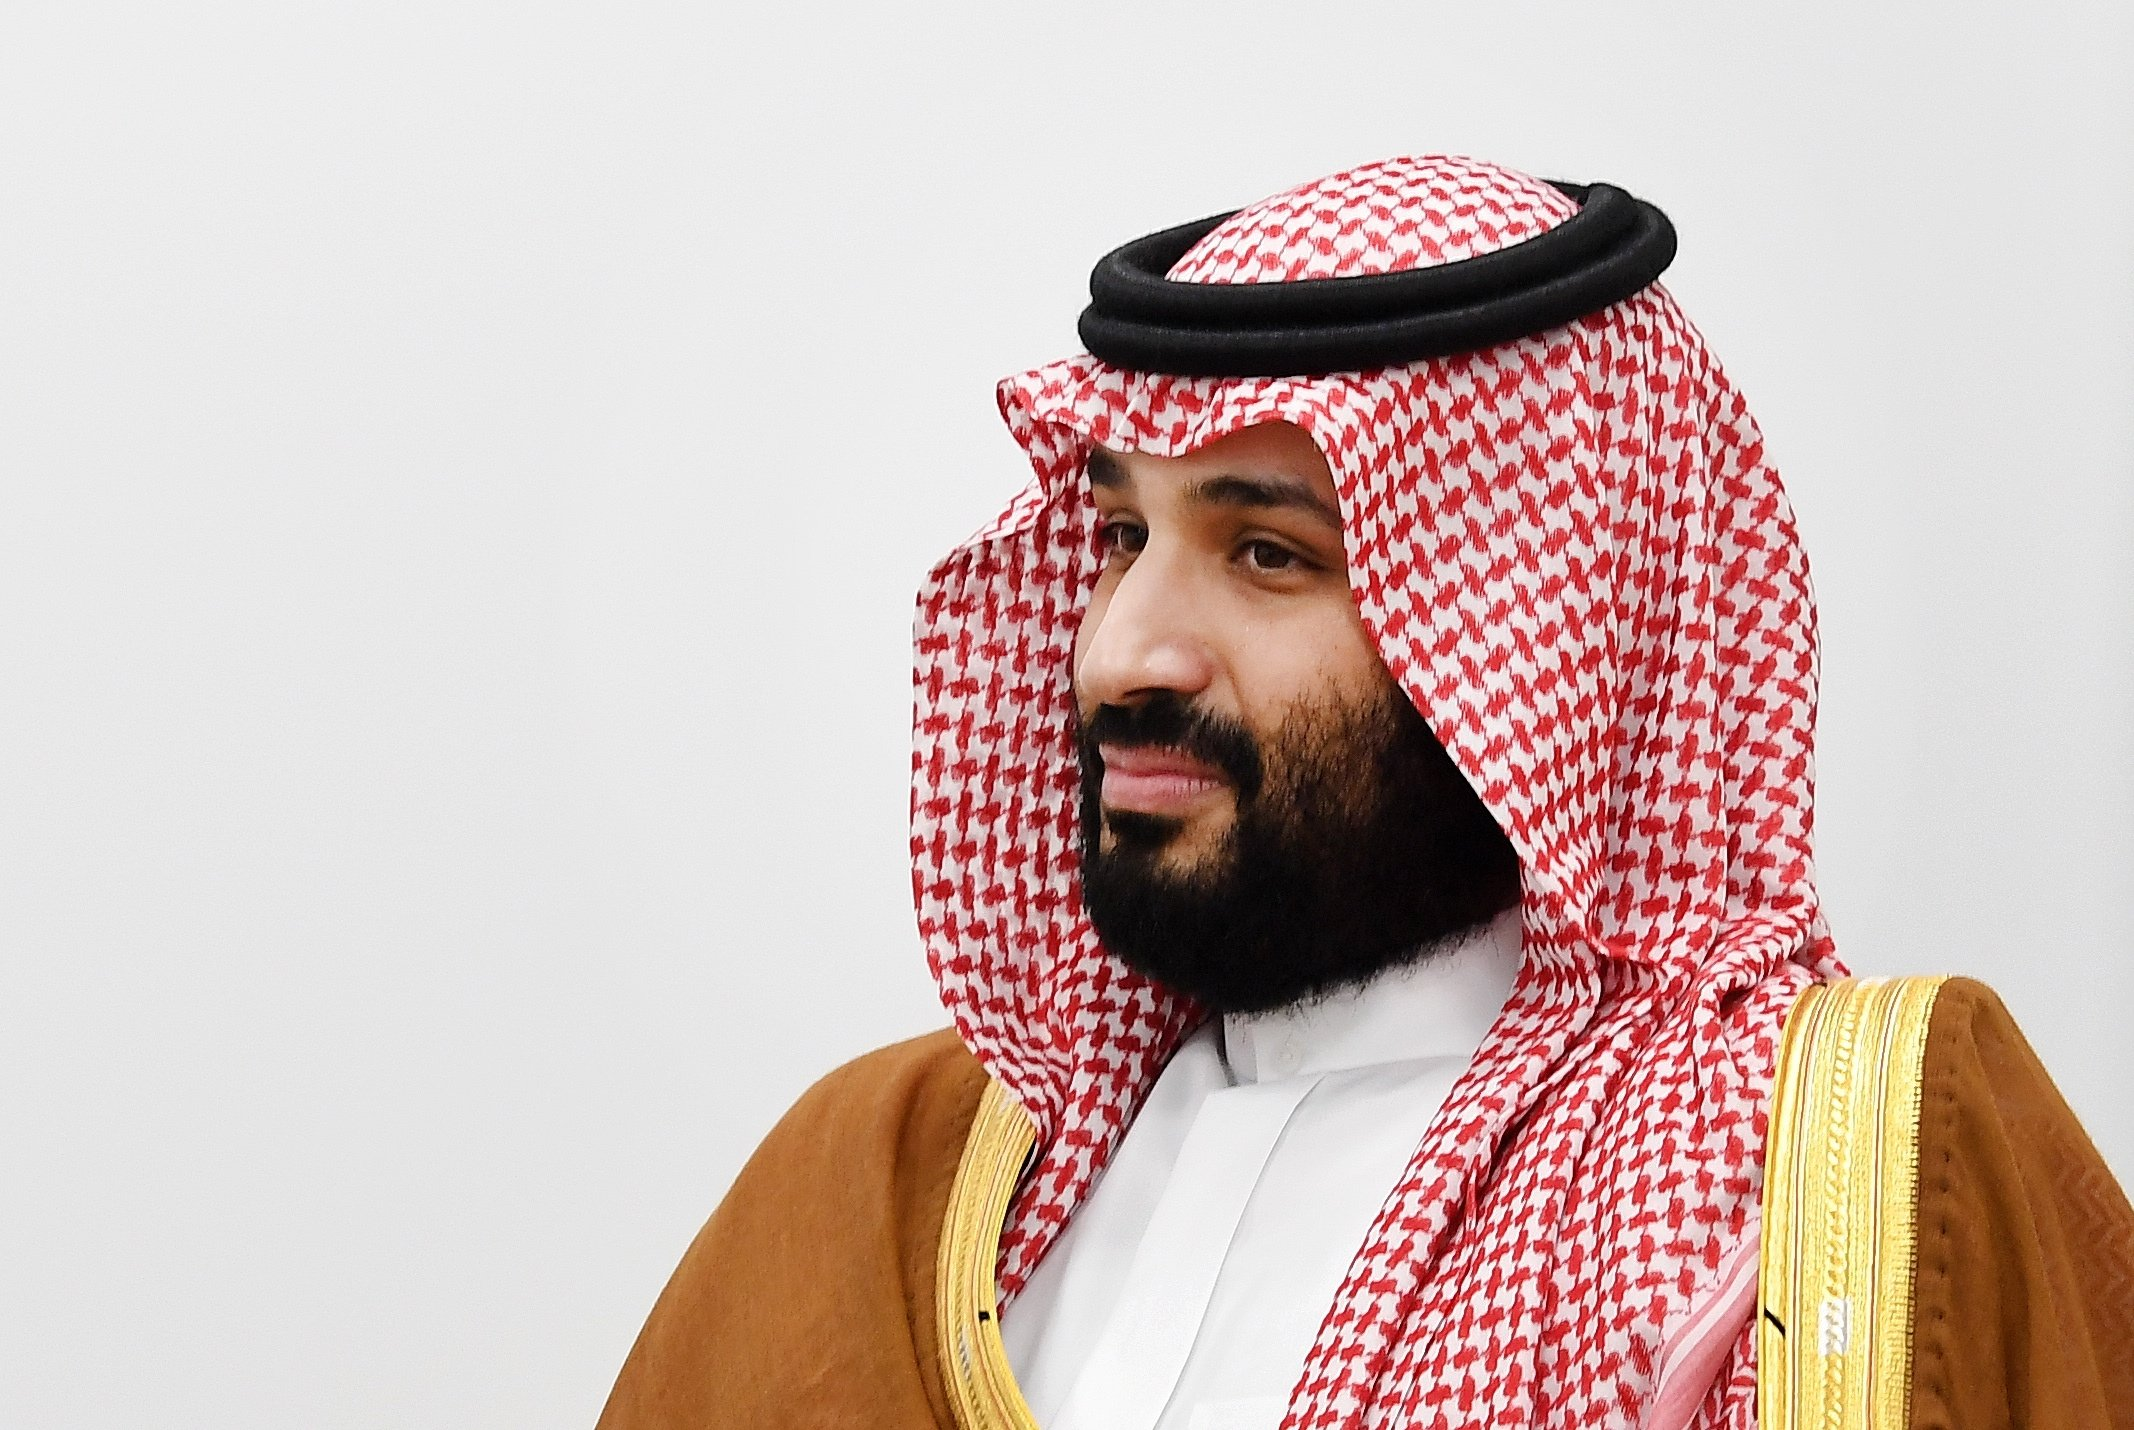 Crown Prince Mohammed bin Salman of Saudi at the second day of the G-20 summit in Osaka, Japan, June 29, 2019. (reissued Feb. 26, 2021). (EPA File Photo)